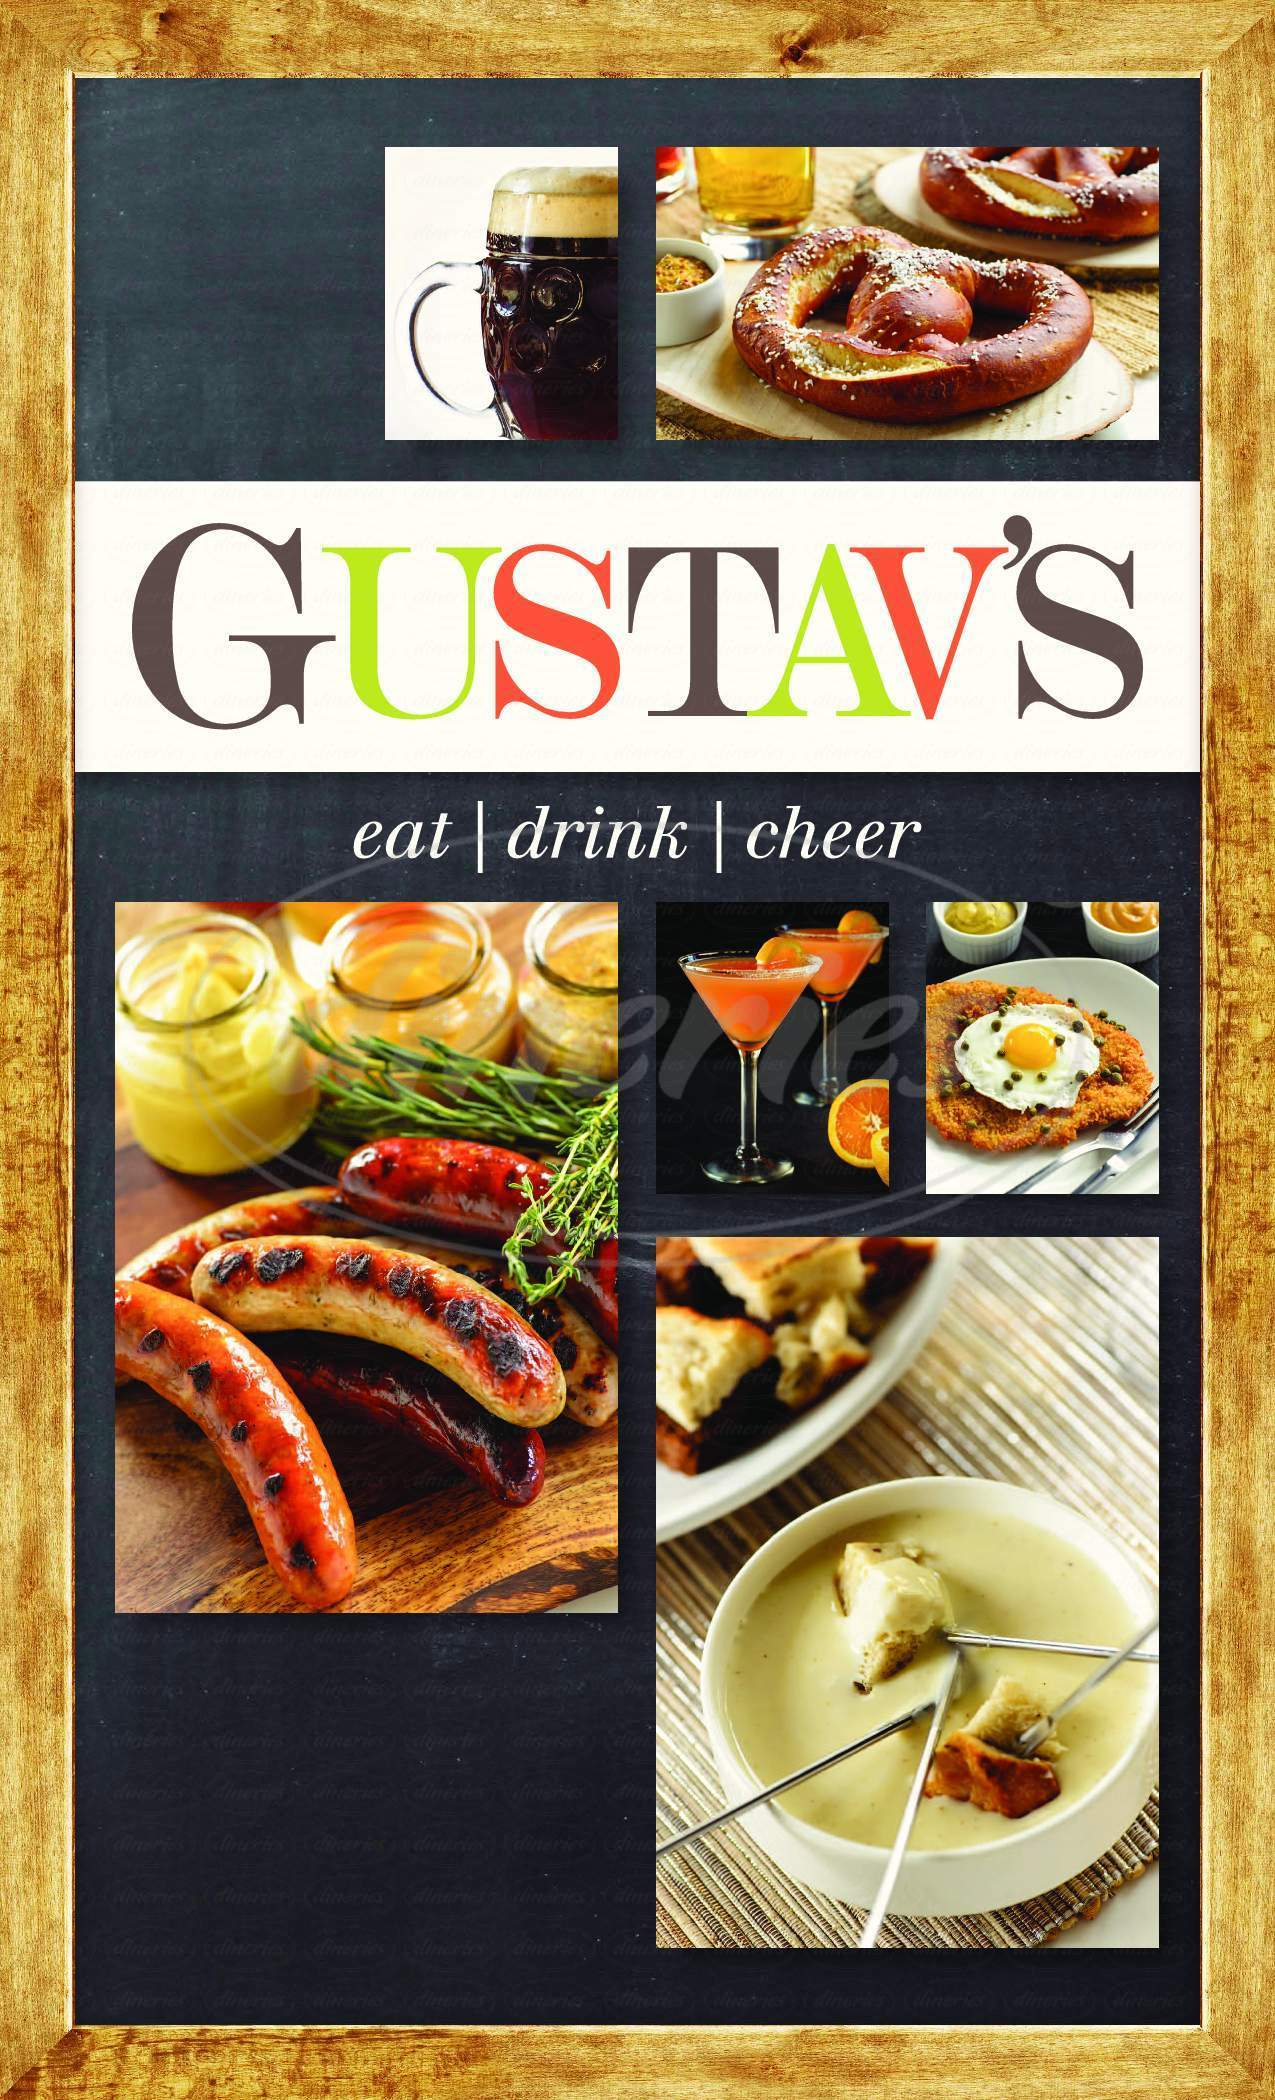 menu for Gustav's Pub & Grill